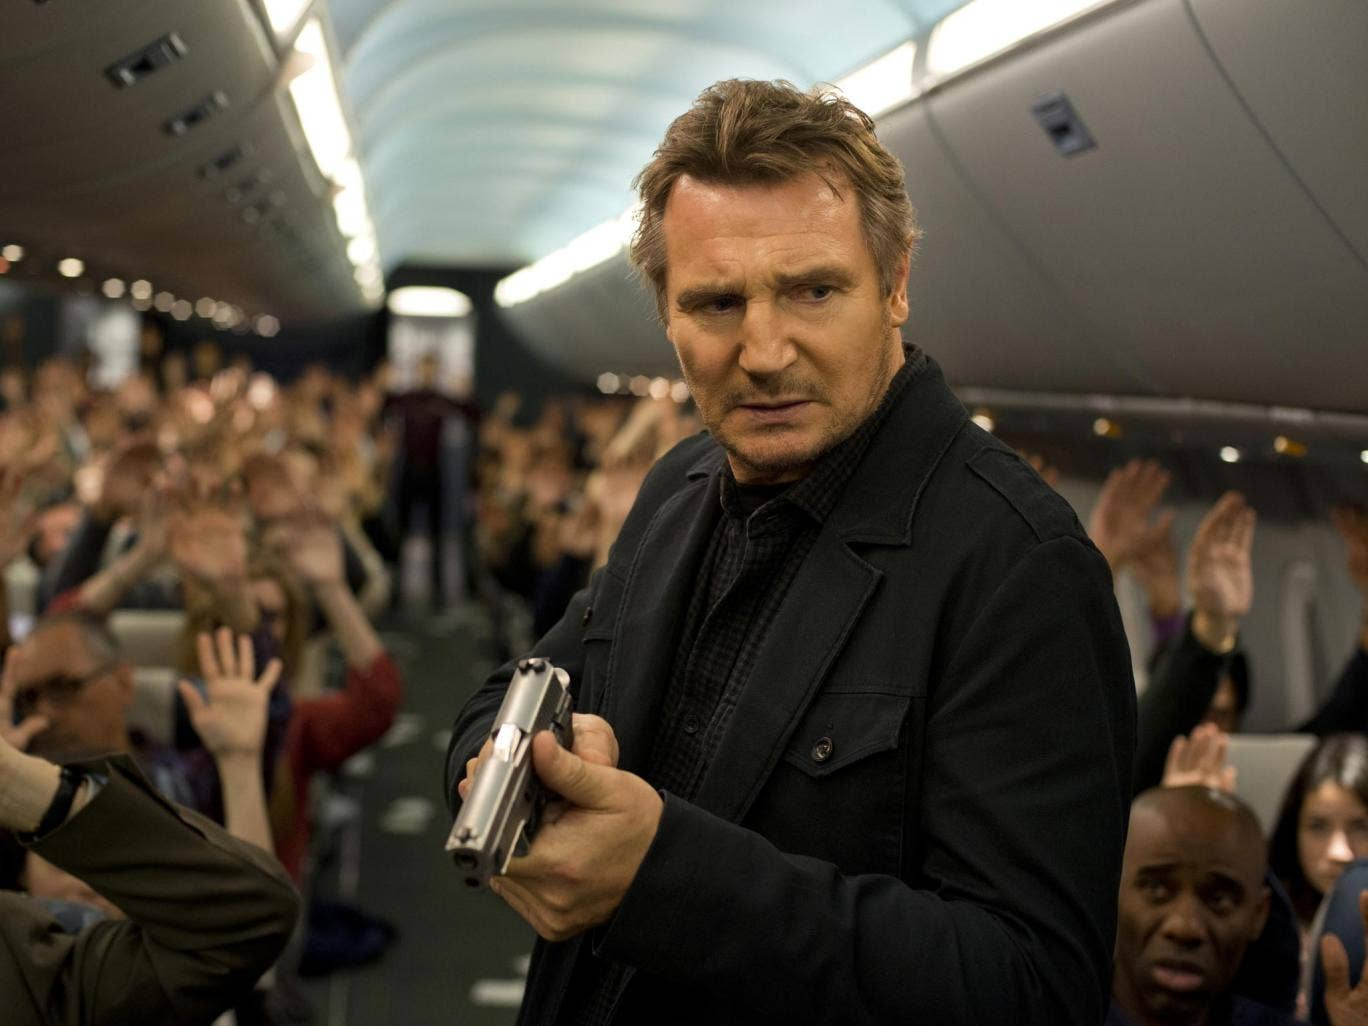 Stick-up in the air: Liam Neeson in the action thriller 'Non-Stop'